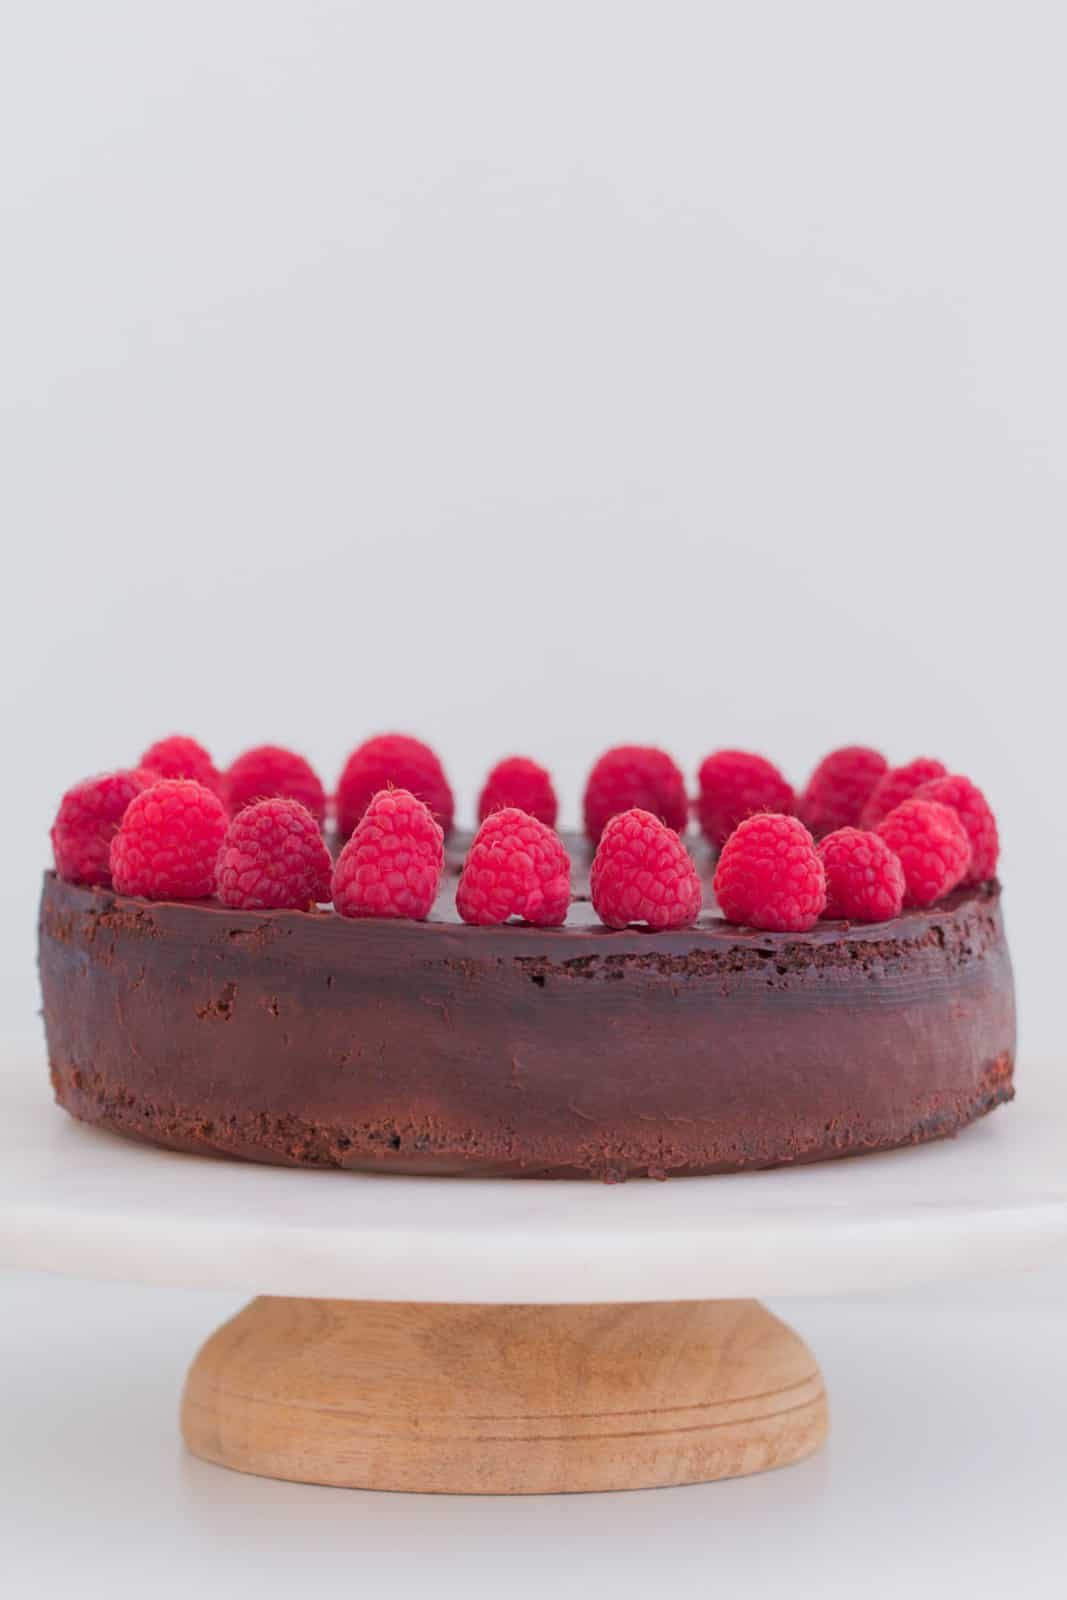 A round dark chocolate mousse cake on a white cake plate decorated with chocolate ganache and raspberries.